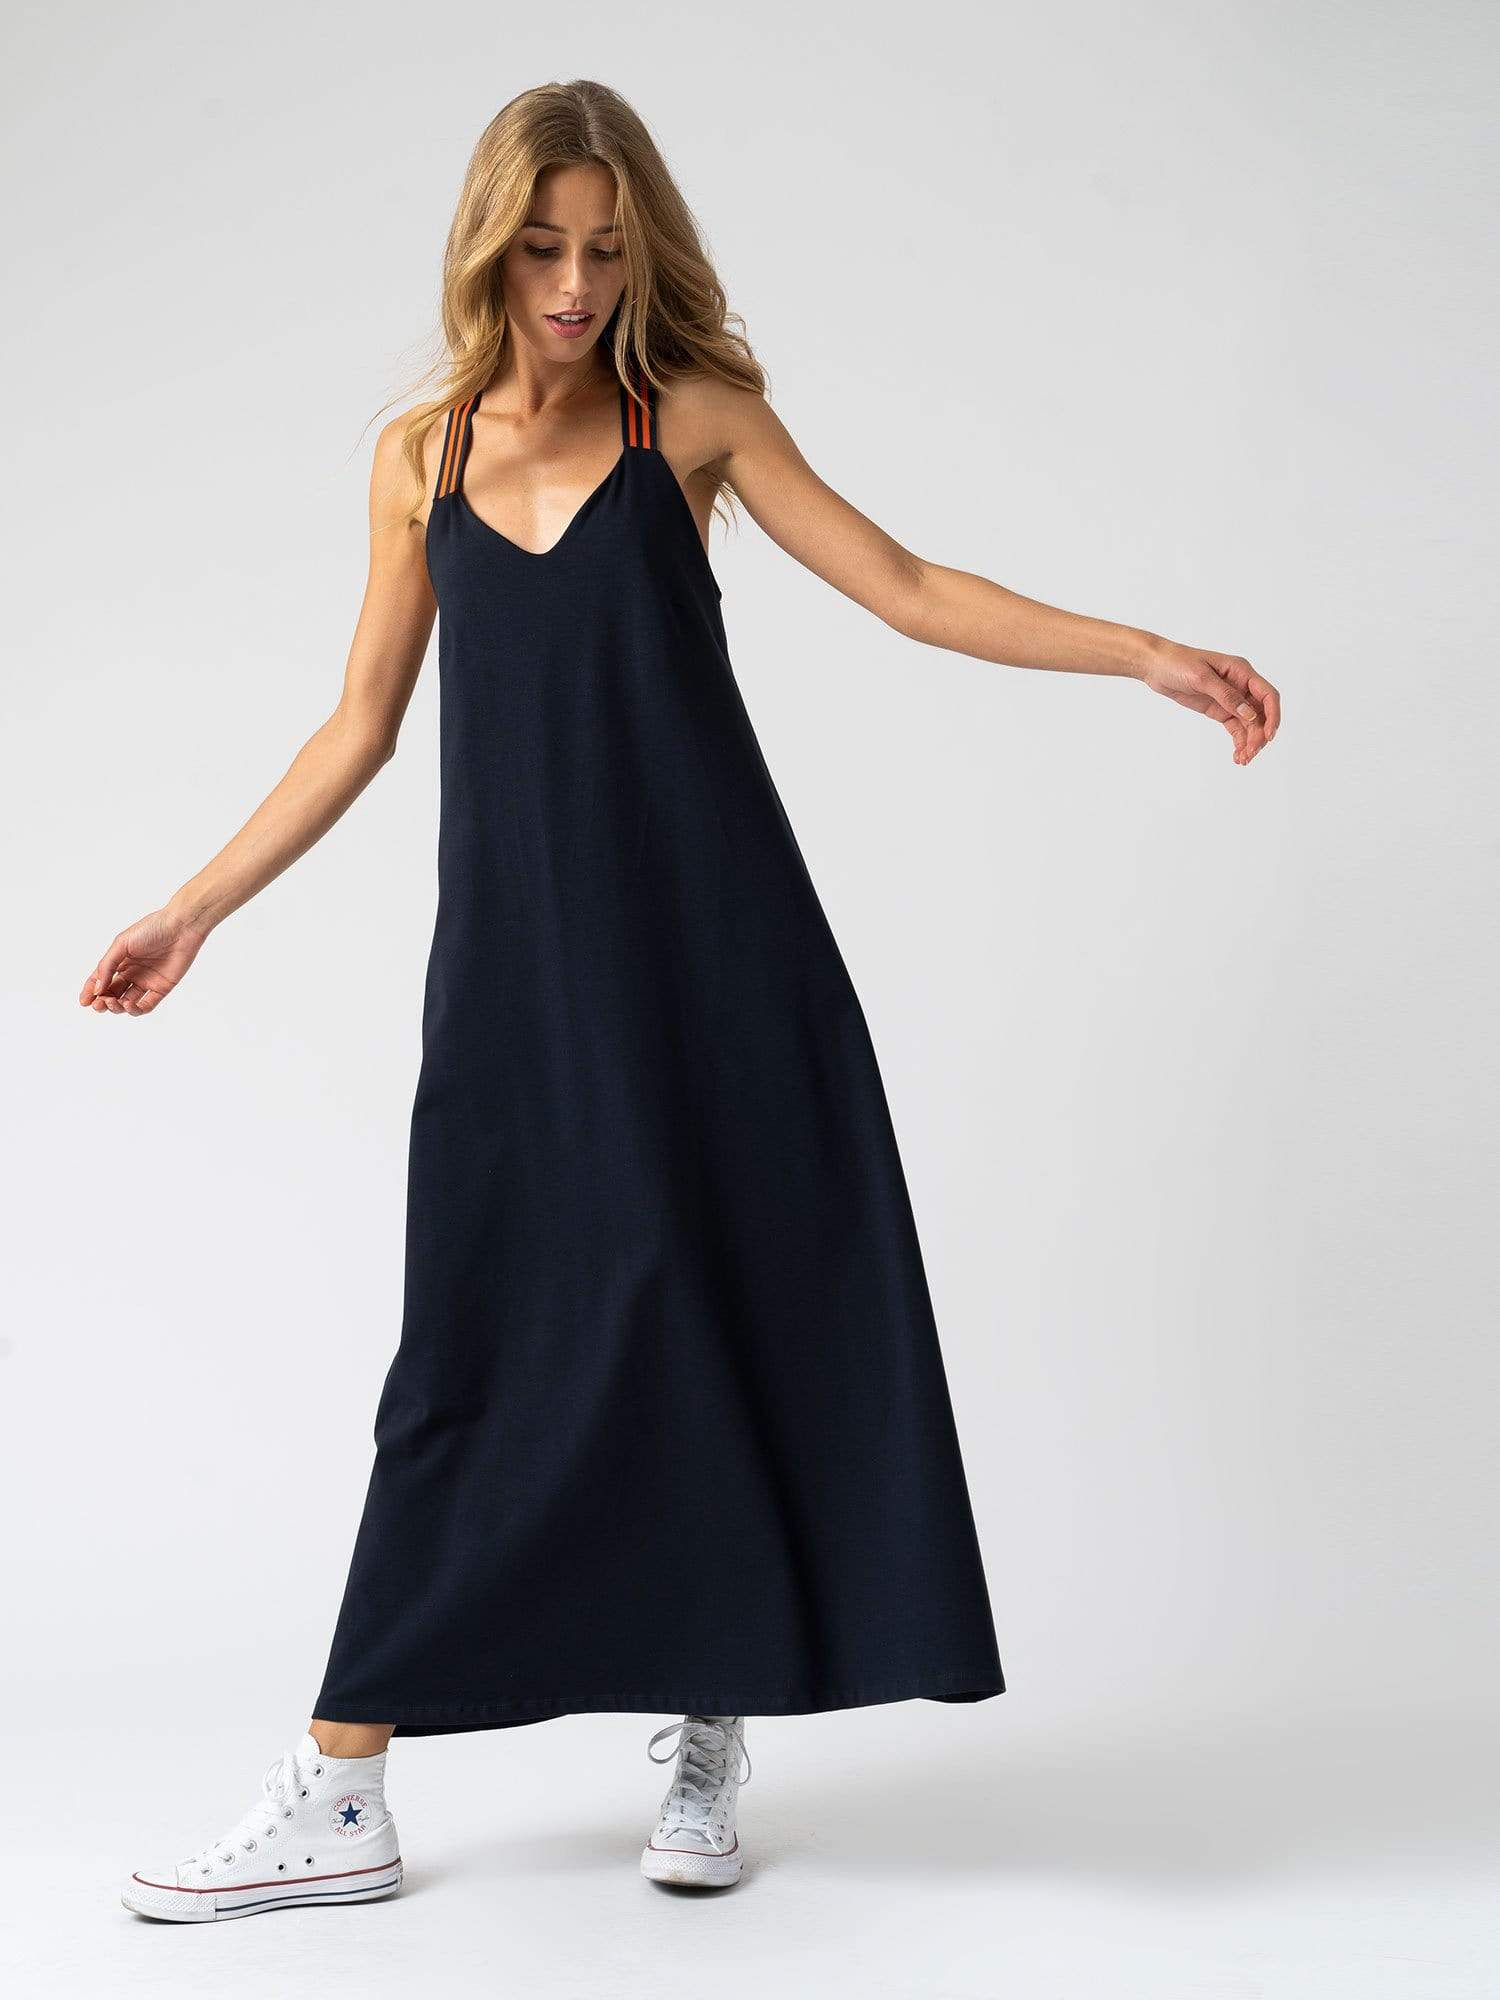 Dress The Sunset Dress - Navy Zaggora UK